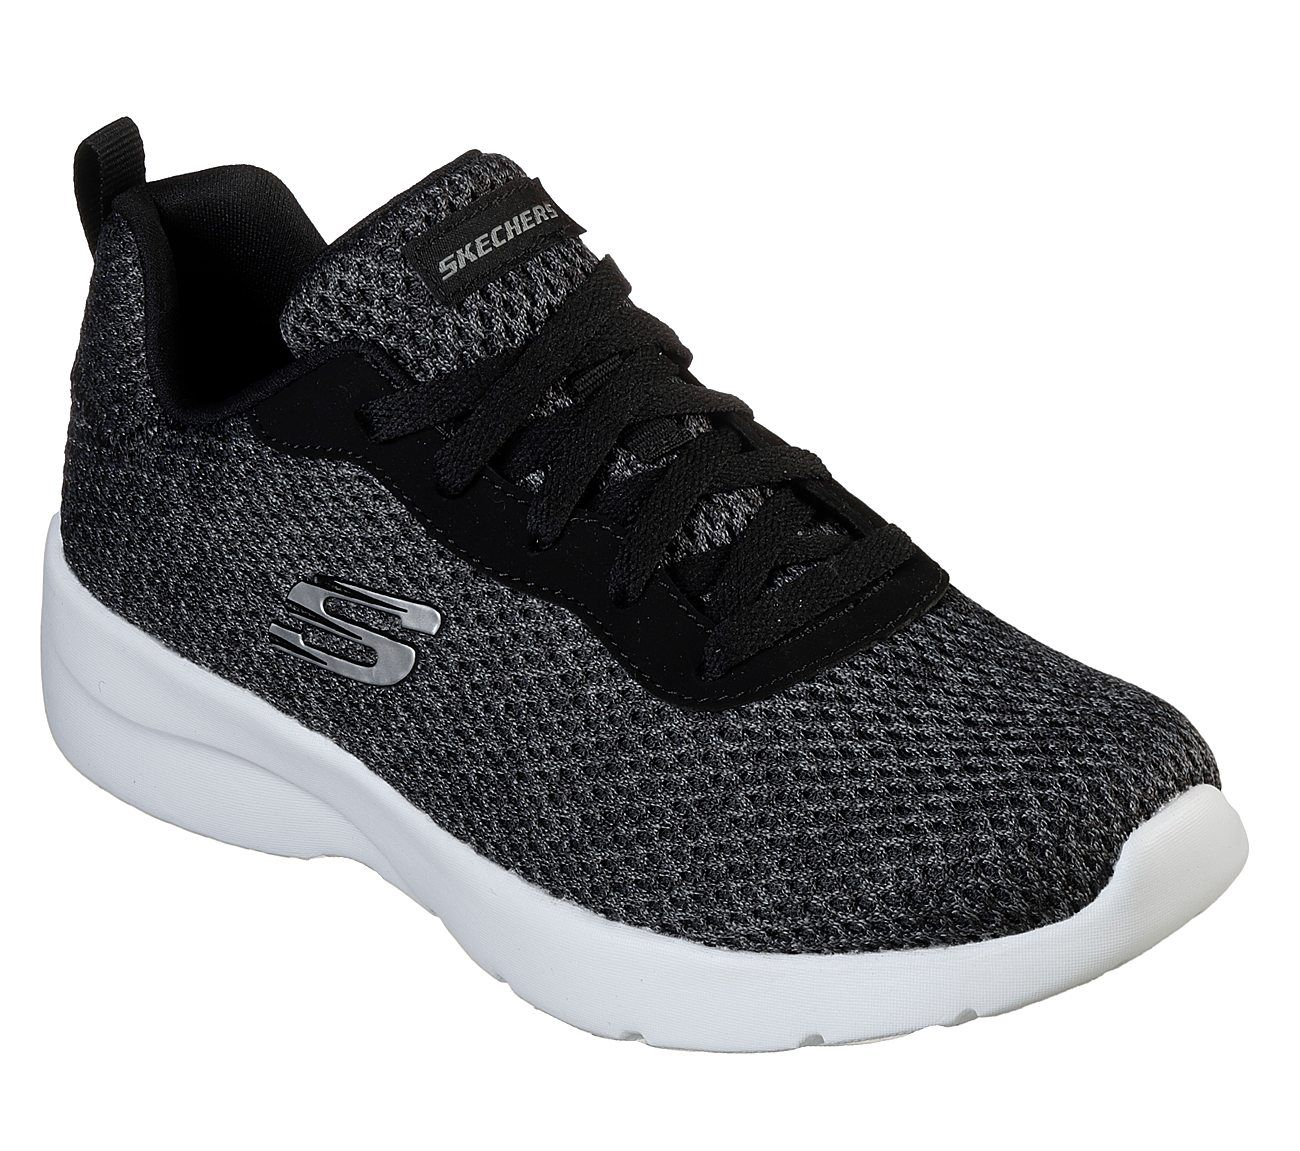 TÊNIS SKECHERS DYNAMIGHT 2.0 QUICK